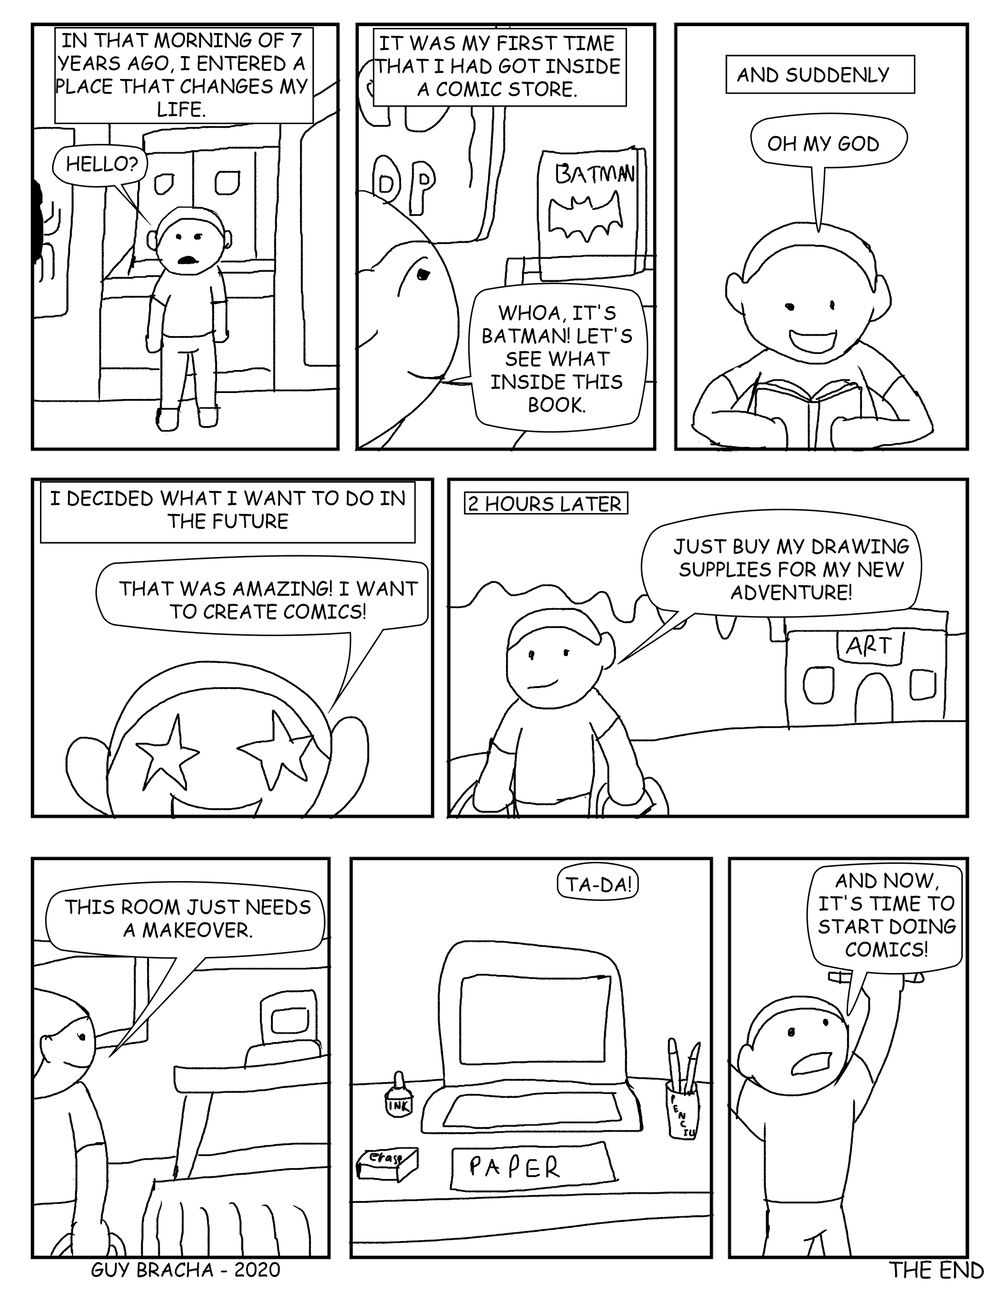 The day i start creating comics - image 1 - student project